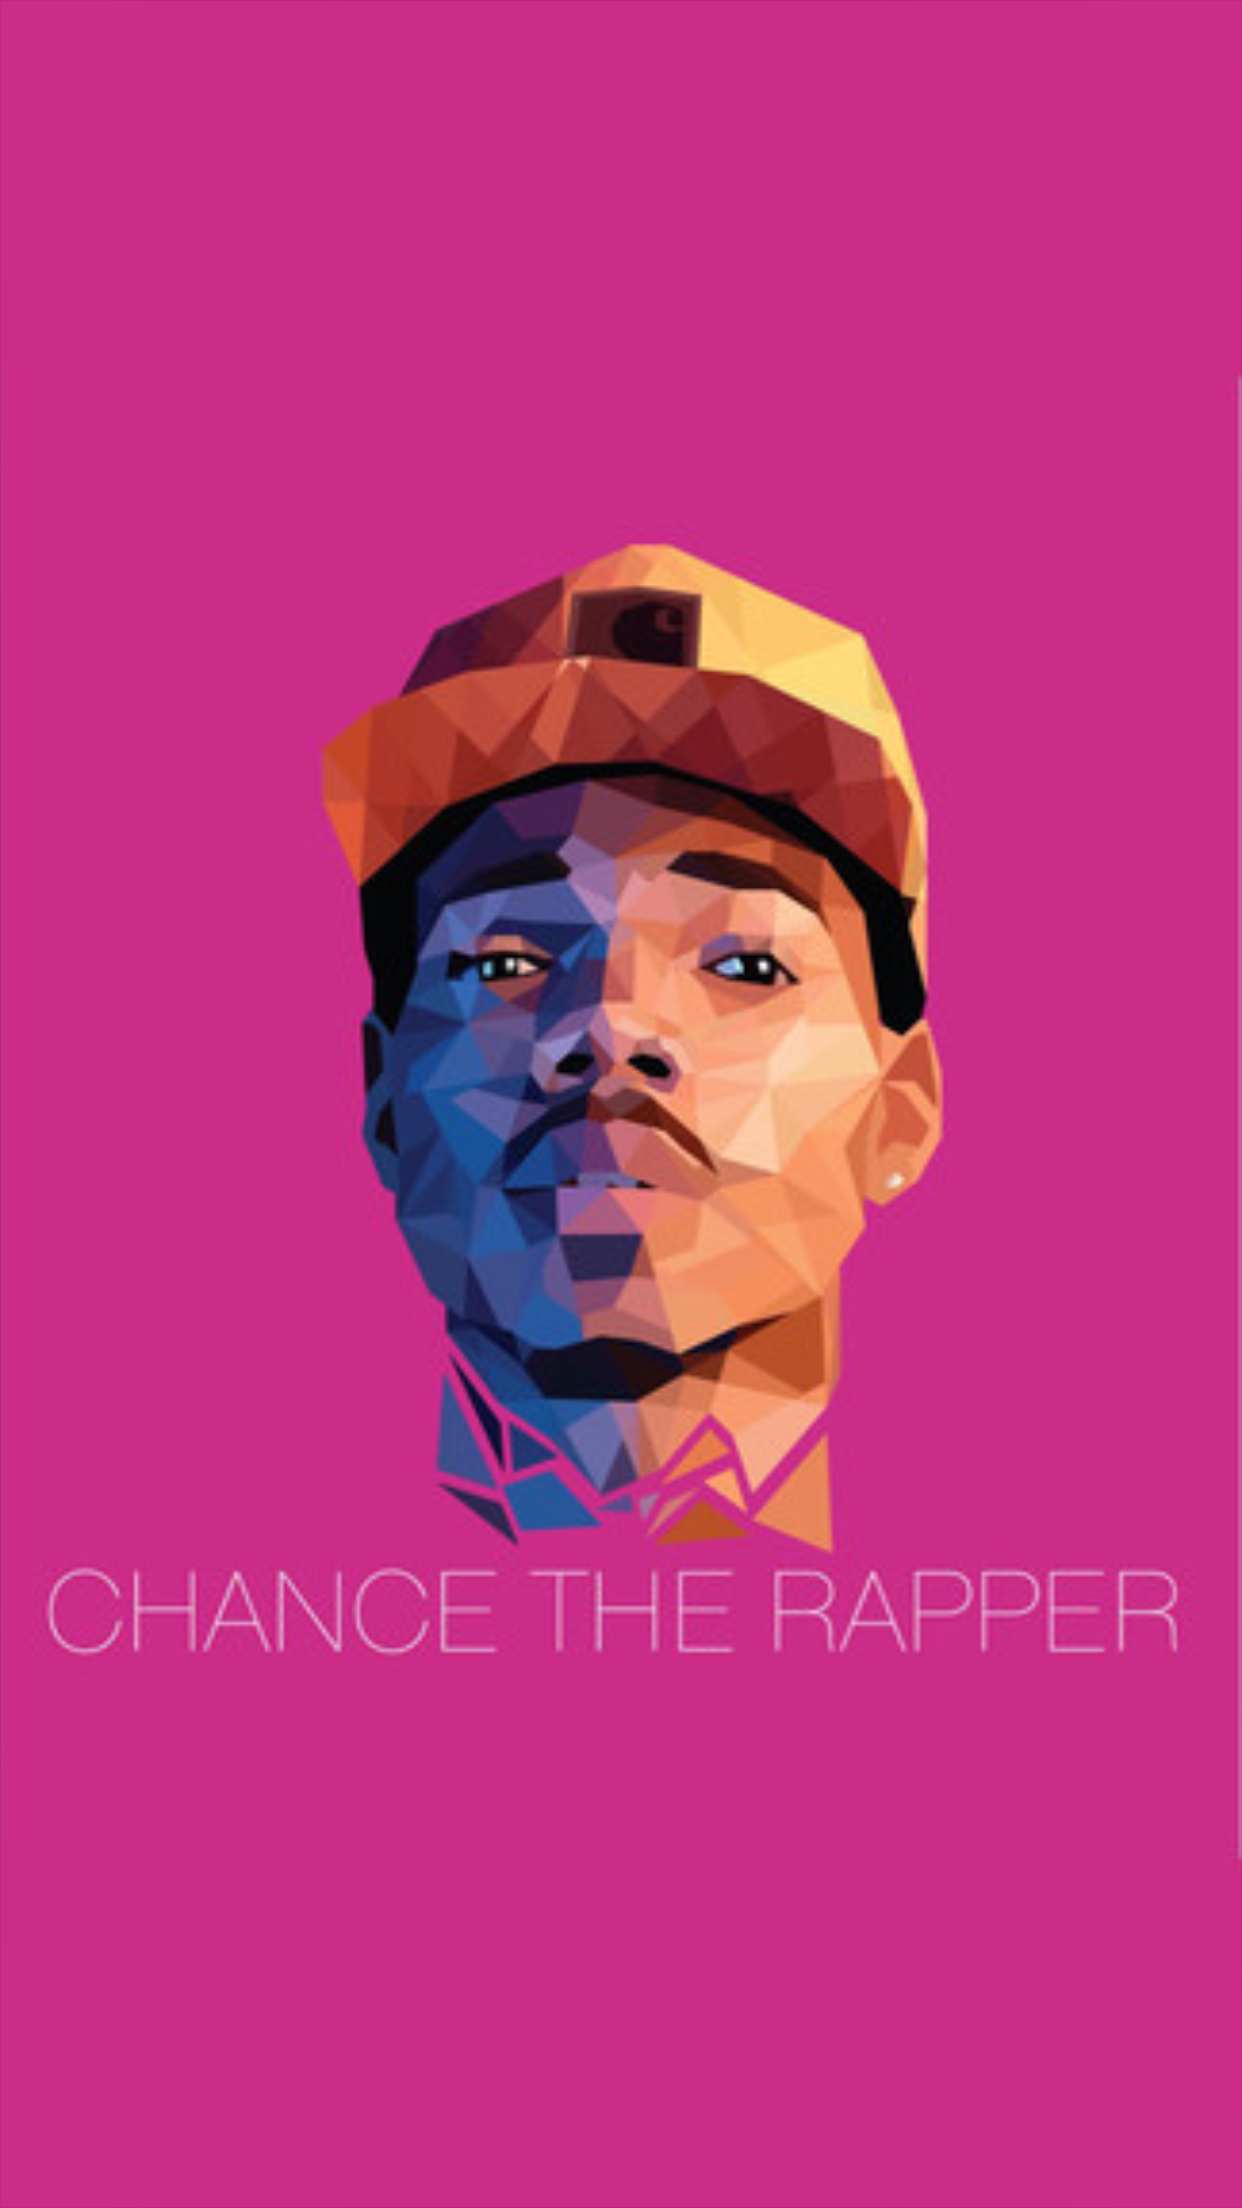 Pin By Kerrington Mcelroy On Wallpaper Chance The Rapper Wallpaper Chance The Rapper Art Chance The Rapper